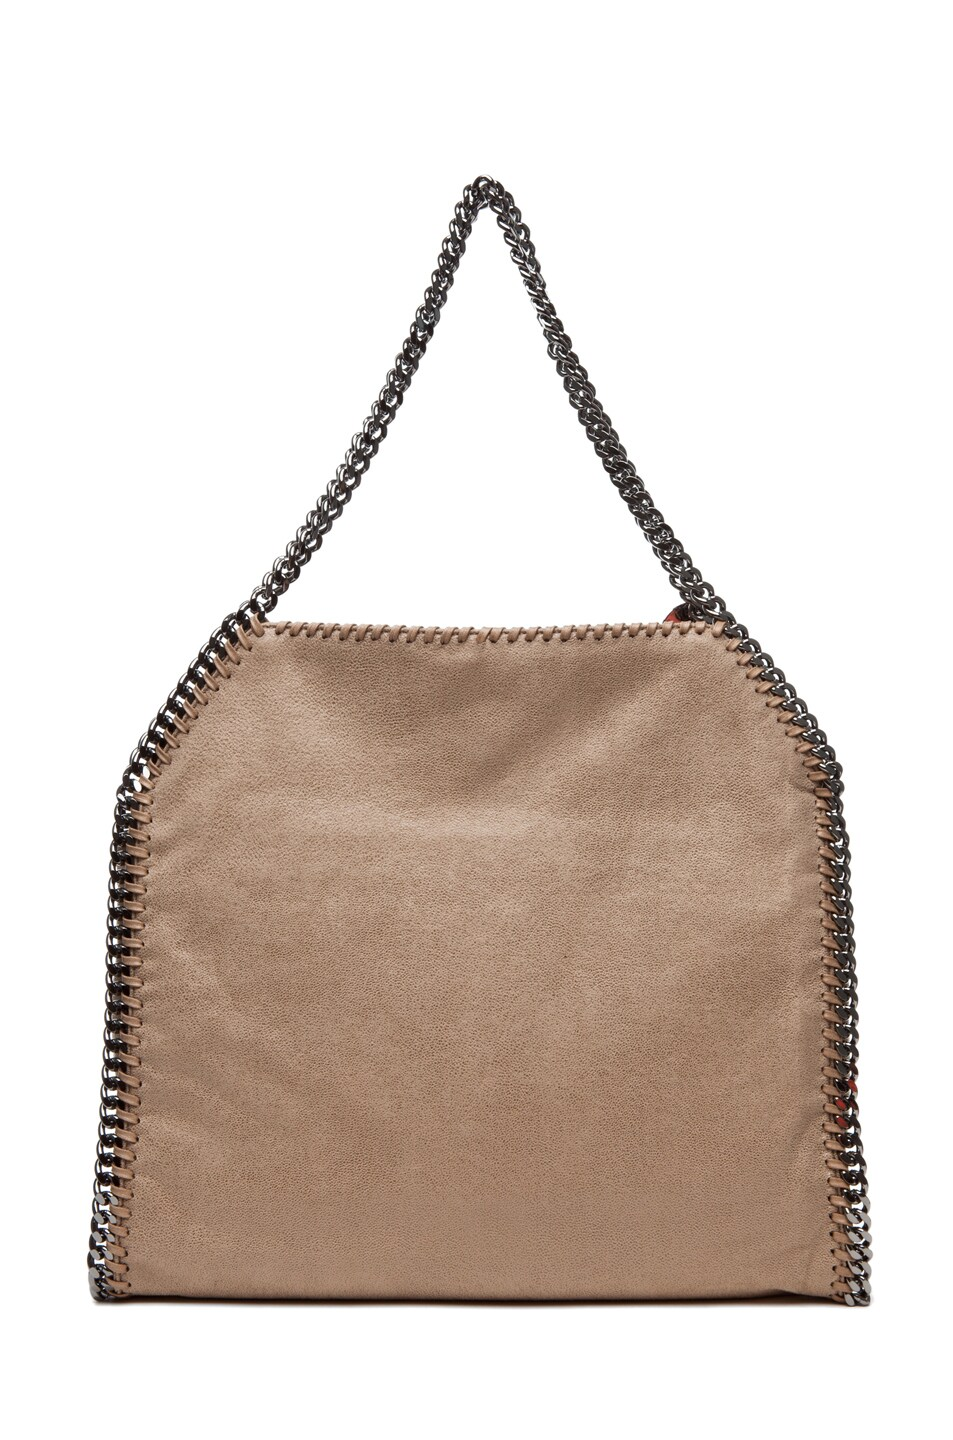 Image 2 of Stella McCartney Shaggy Deer Small Tote in Toffee